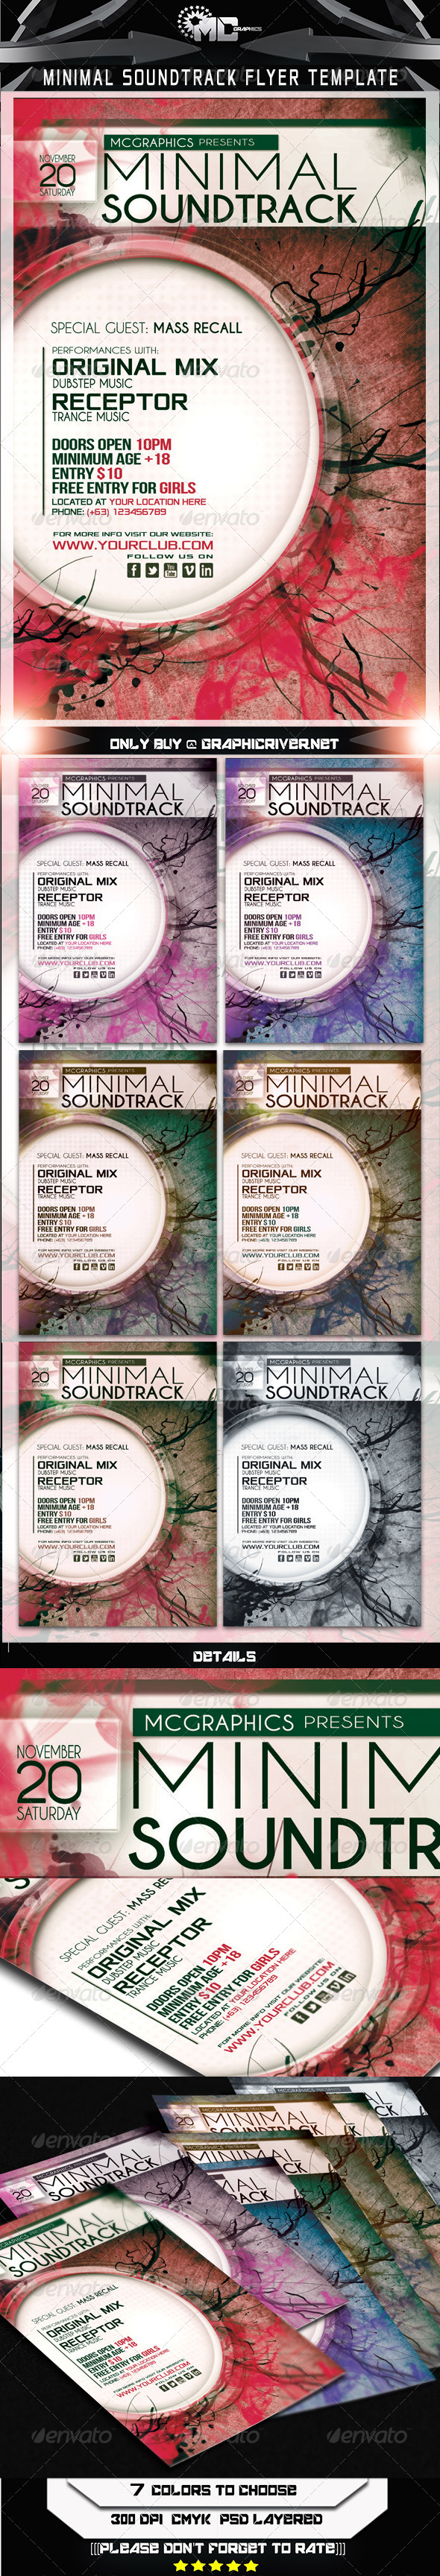 GraphicRiver Minimal Soundtrack Flyer Template 5742270